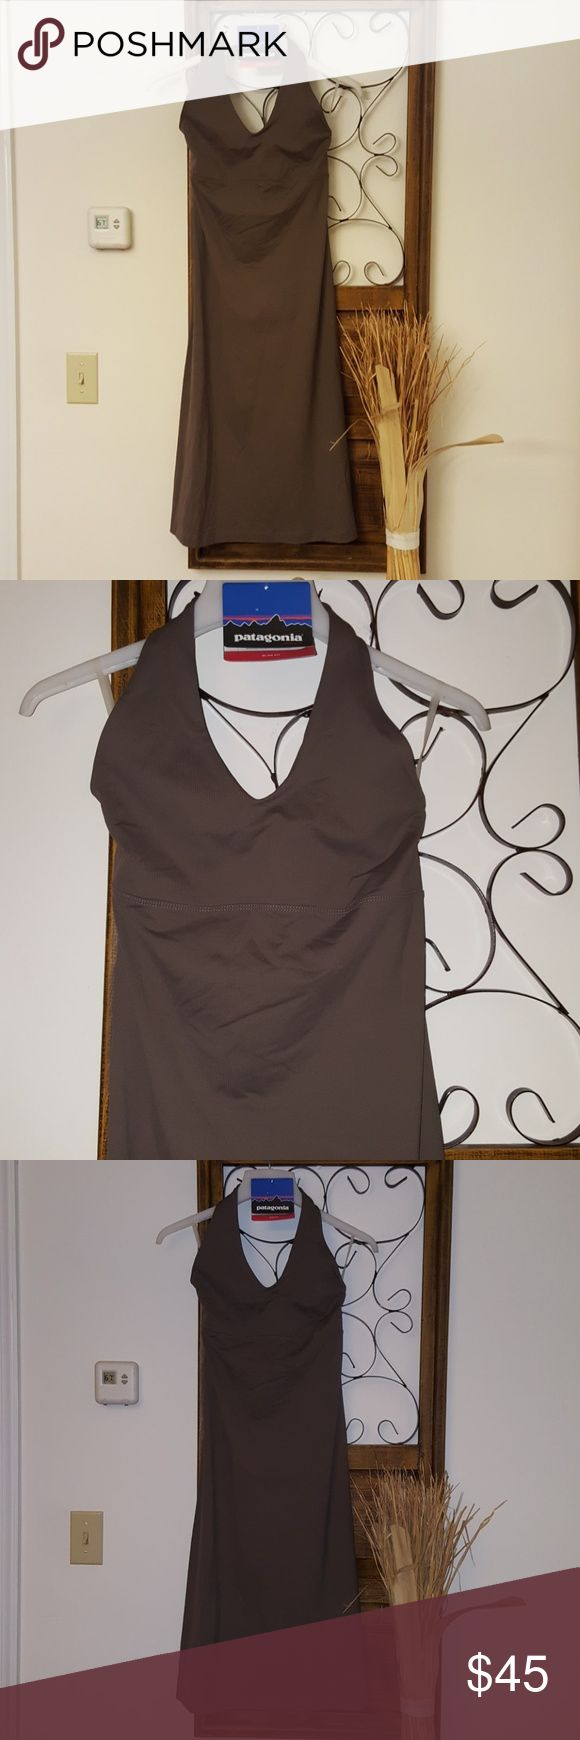 Patagonia dress NWT Perfect little dress, W's Morning Glory dress, size medium, slim fit. Bundle and save. NWT, taupe, gray shade. Patagonia Dresses